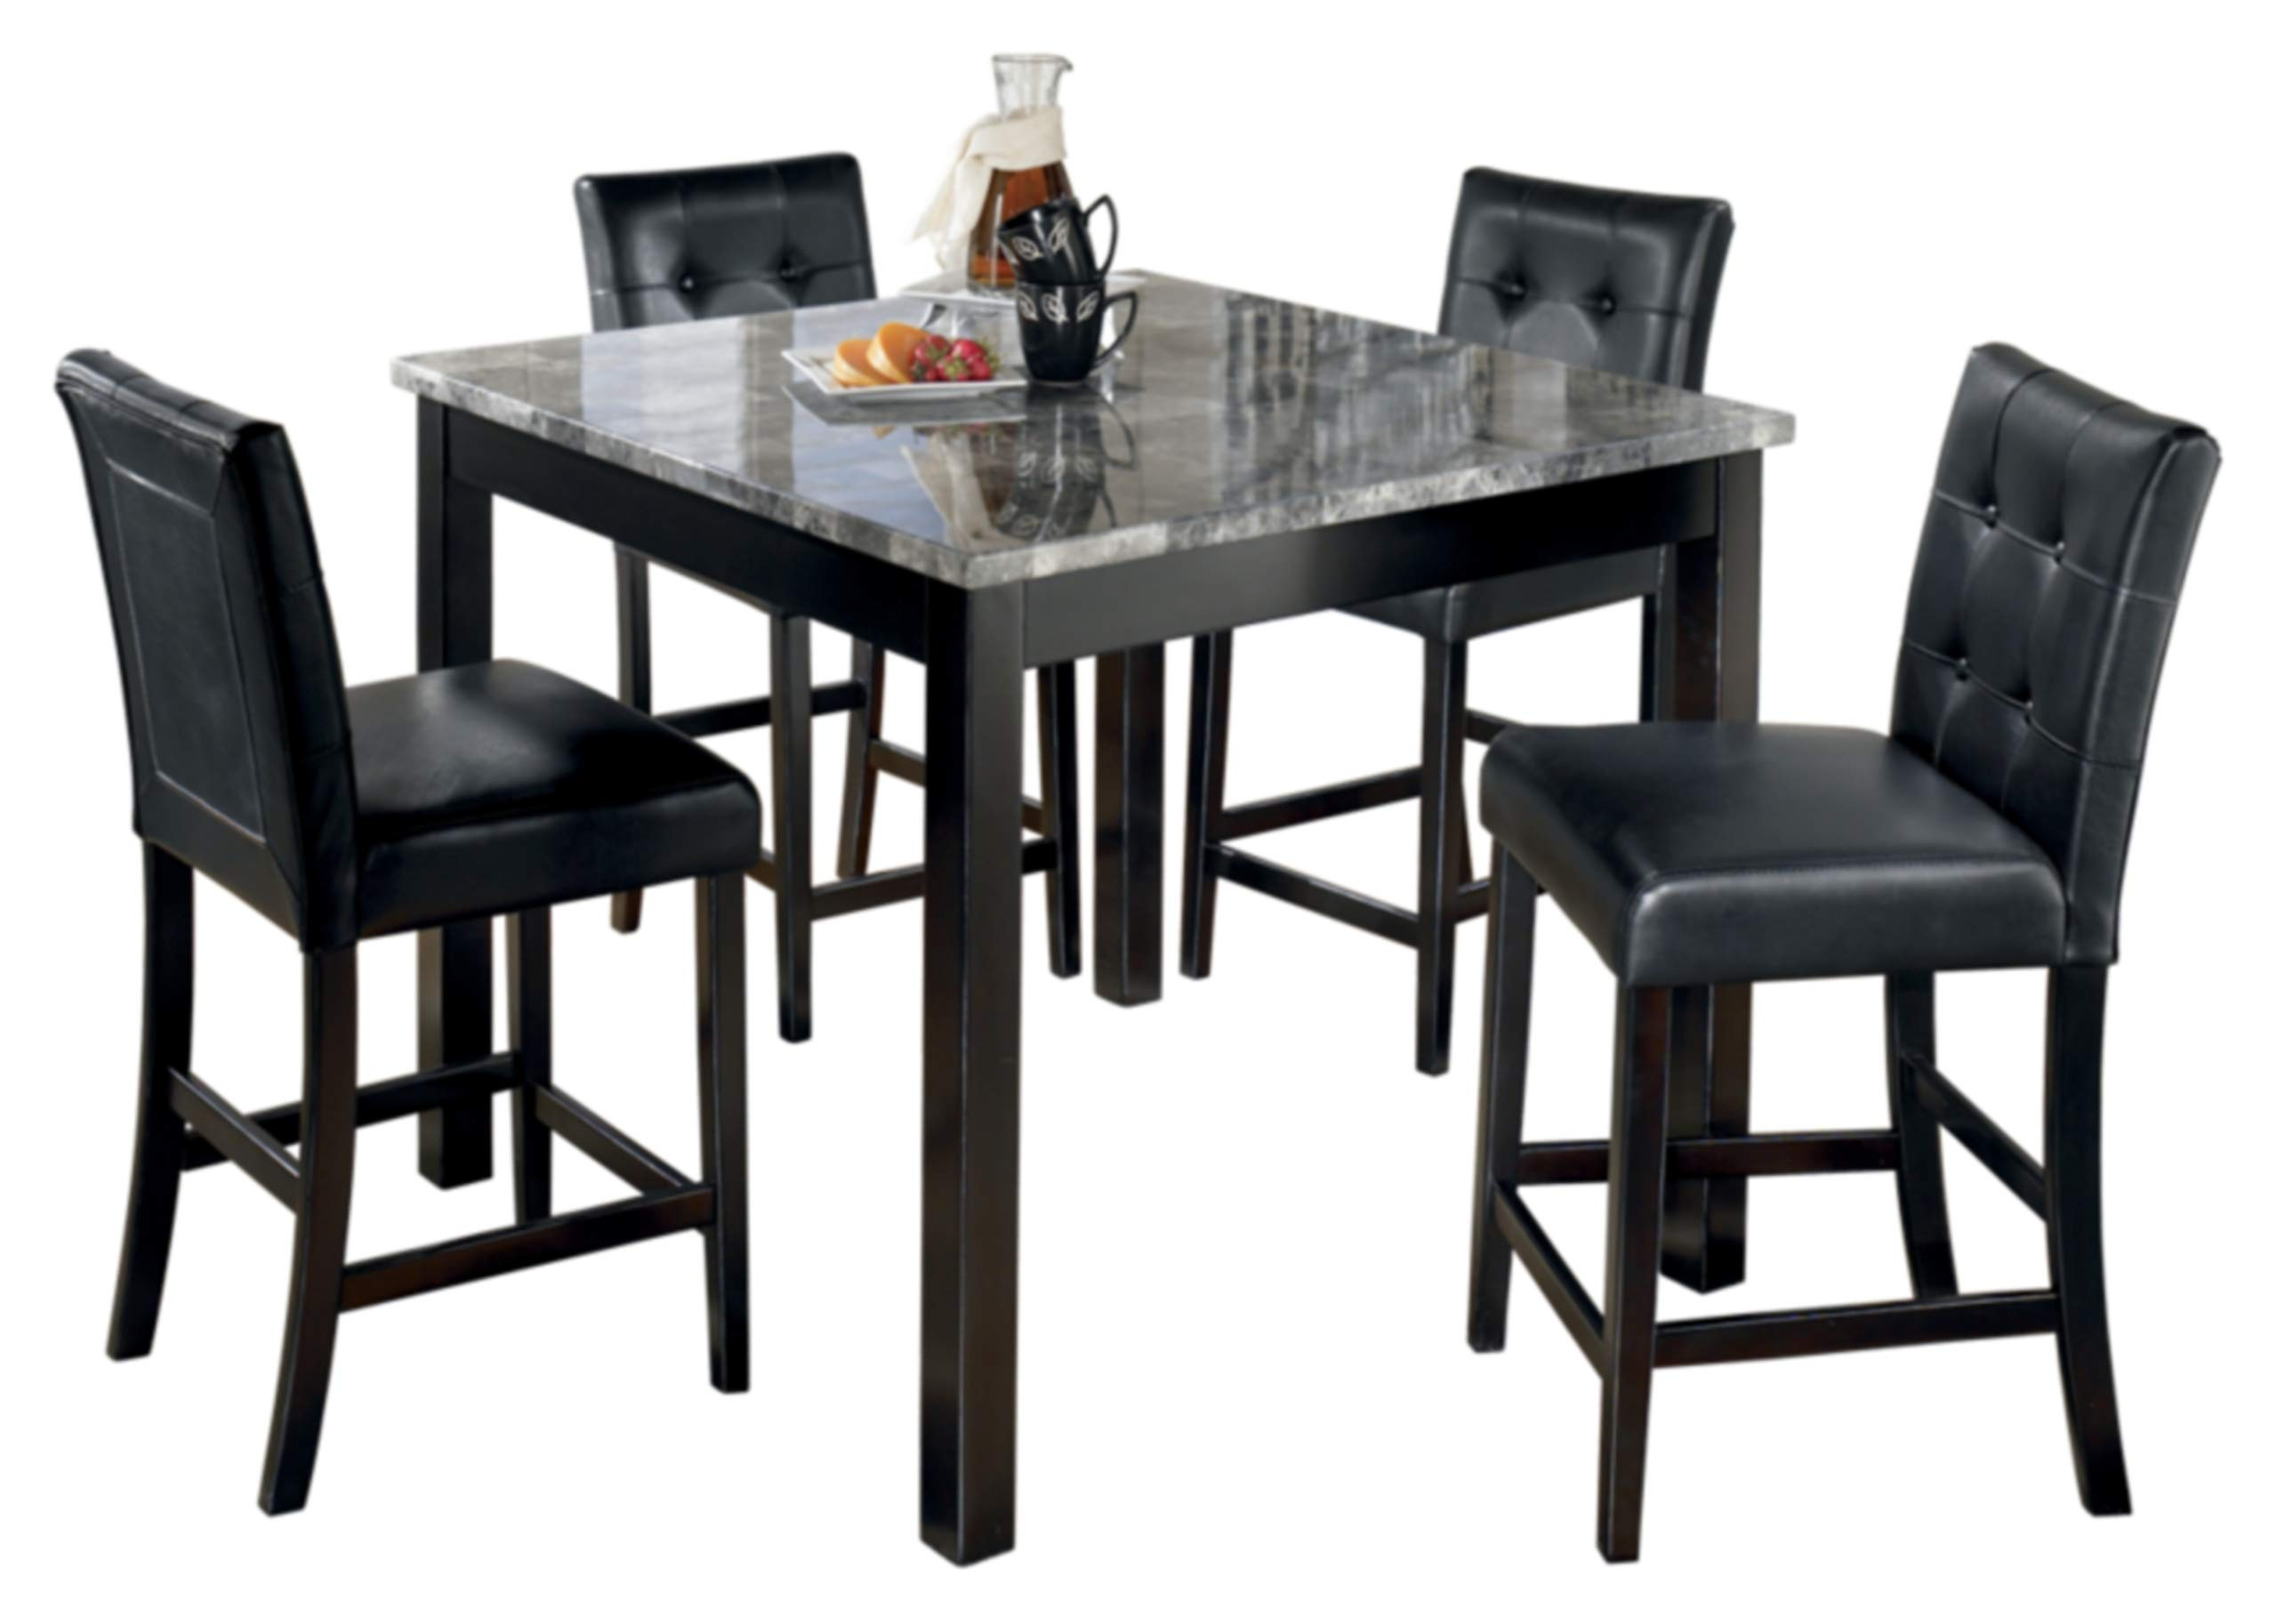 Ashley Furniture Signature Design - Maysville Counter Height Dining Room Set - 1 Table and 4 Barstools - Contemporary - Set of 5 - Black by Signature Design by Ashley